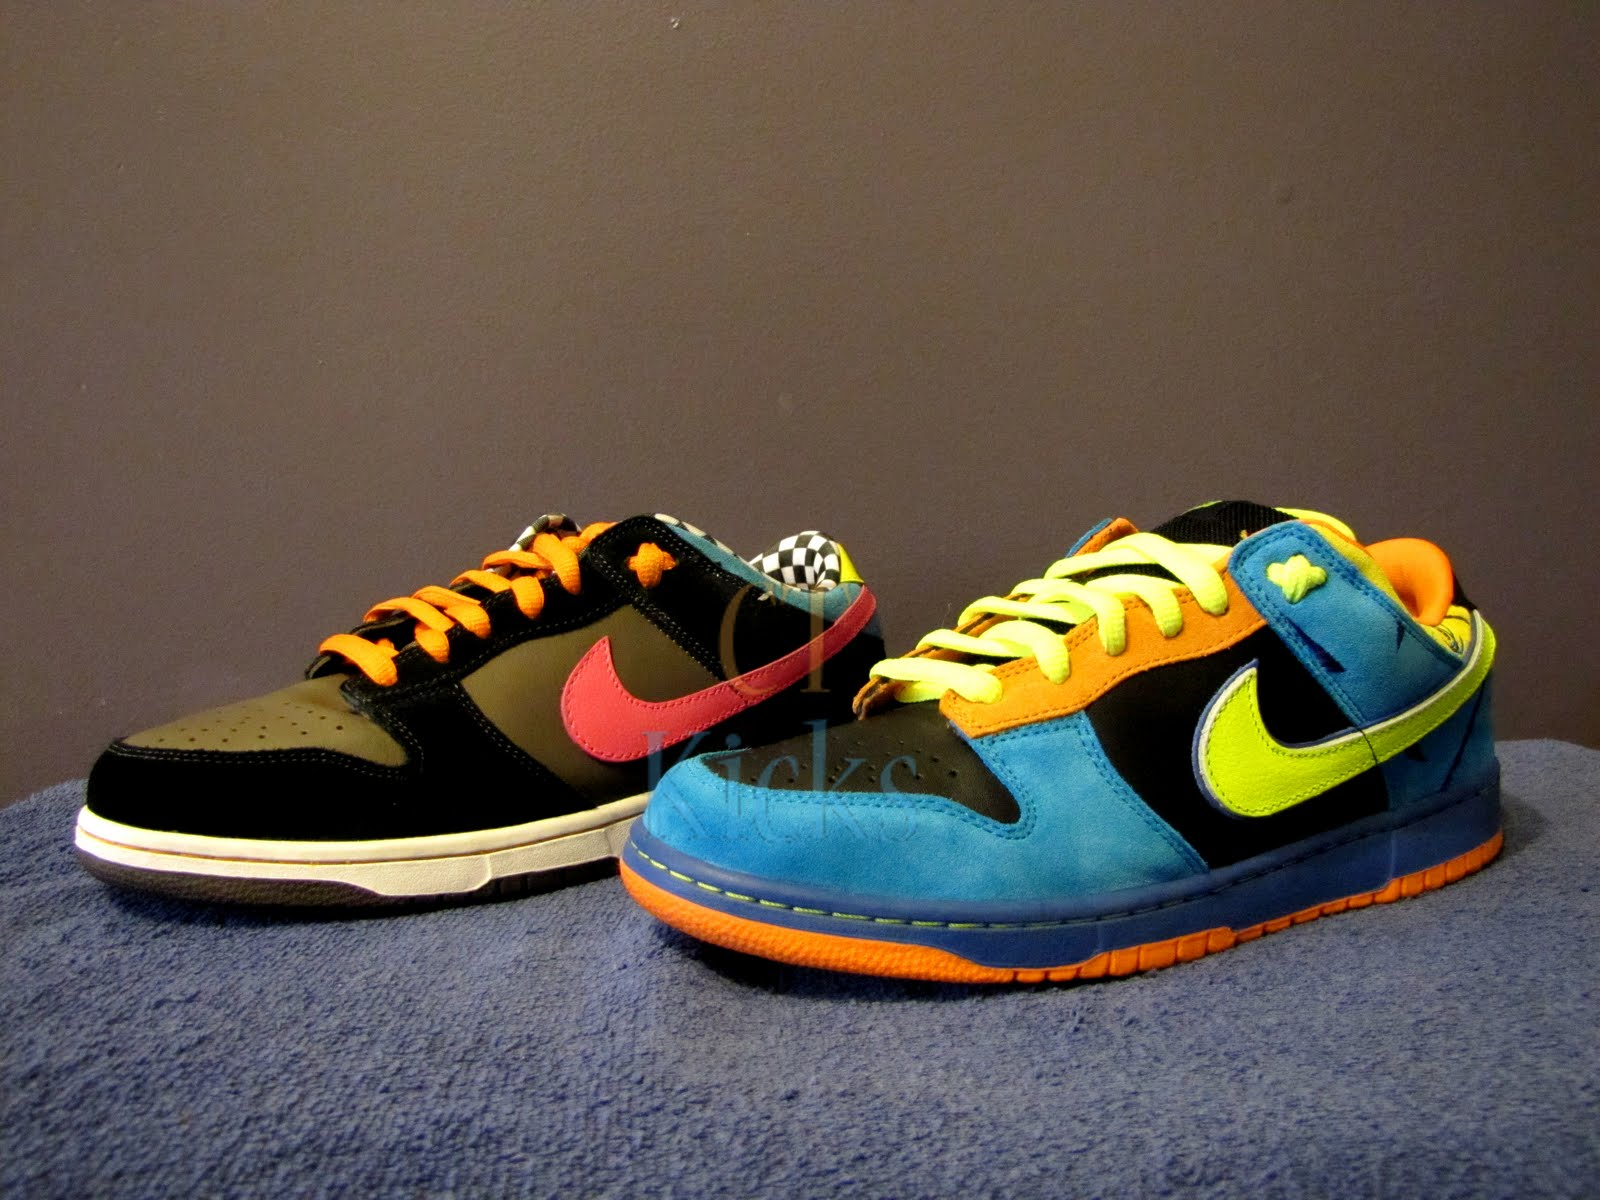 huge discount 664c3 7149f THE SNEAKER ADDICT: #ThisorThat? SB Dunk Low